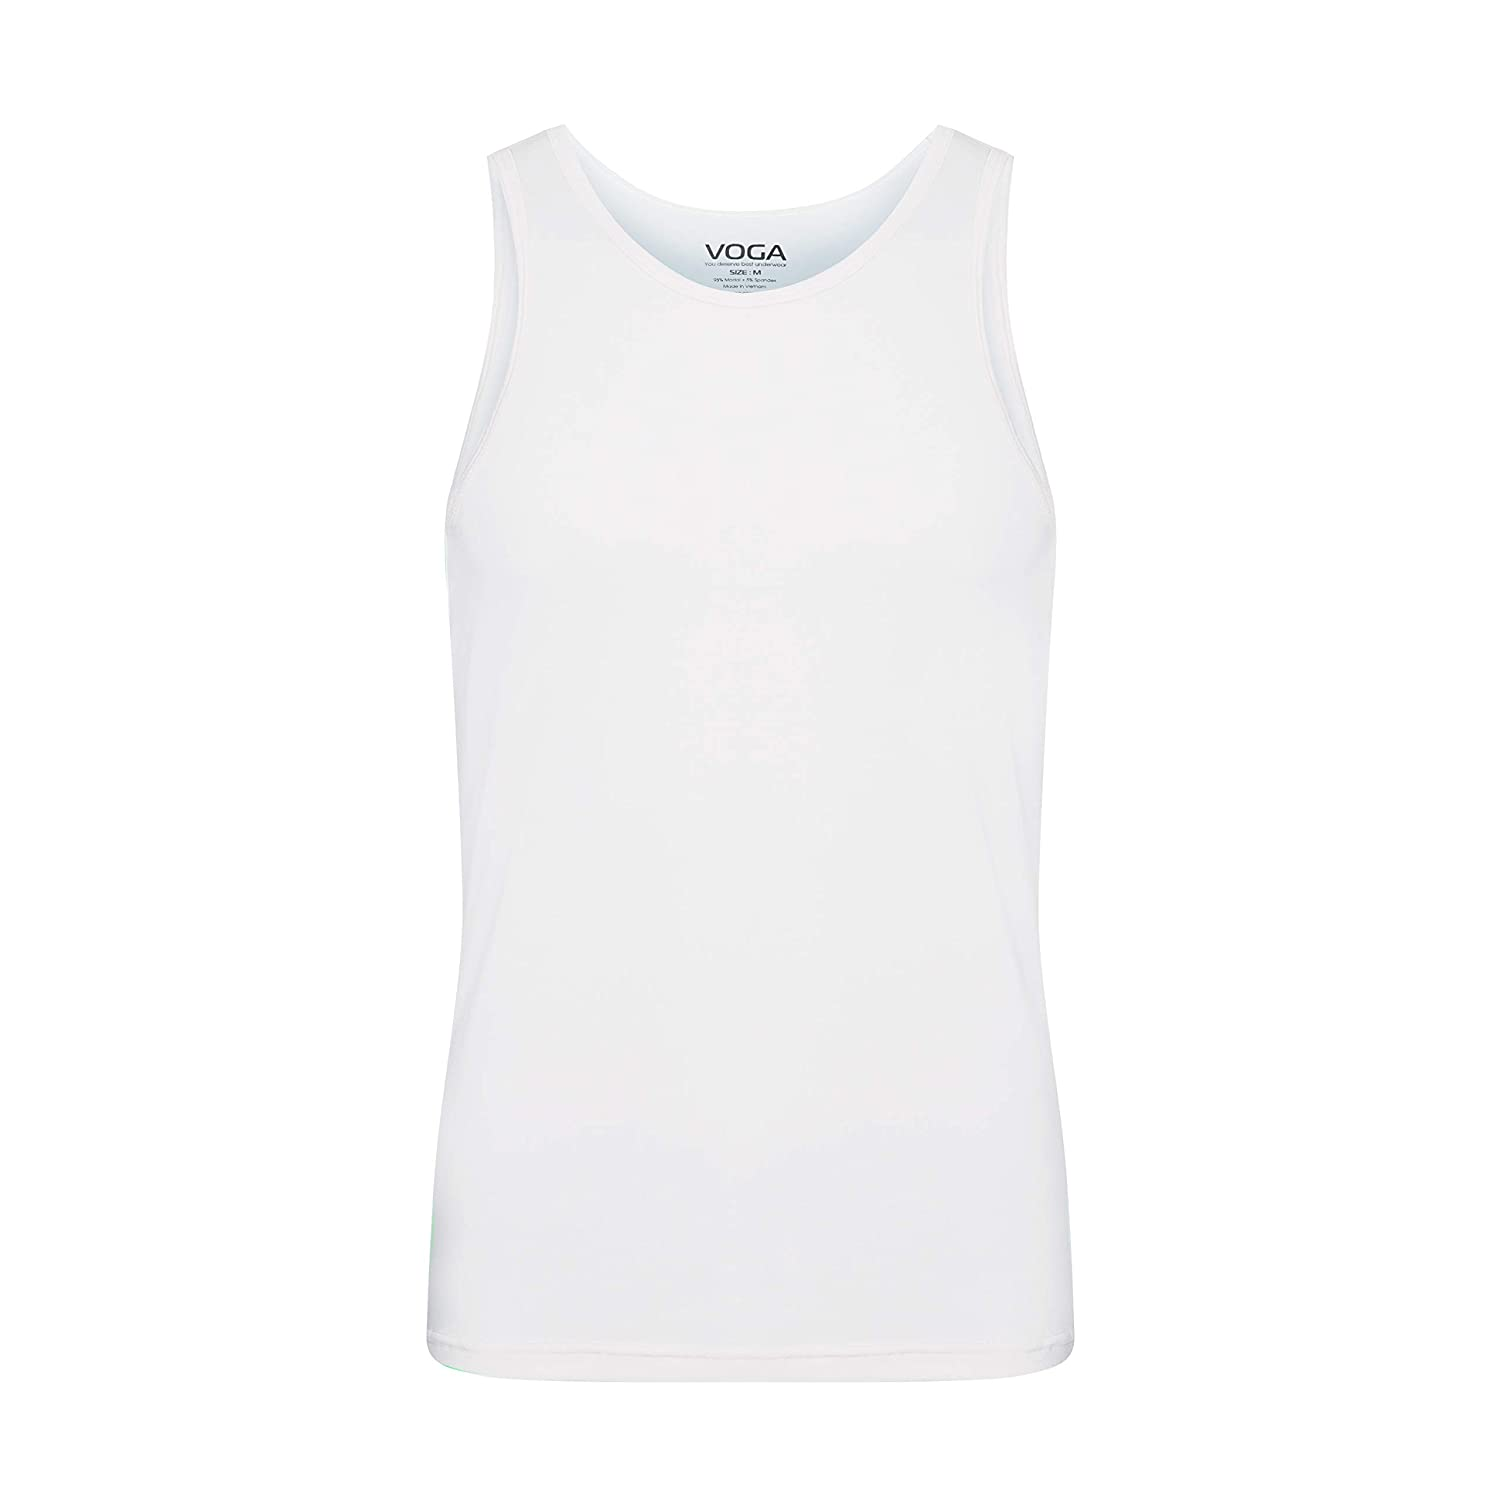 Voga Mens 3 Pack White Color Modal Breathable Cotton Soft Comfy Tank Tops